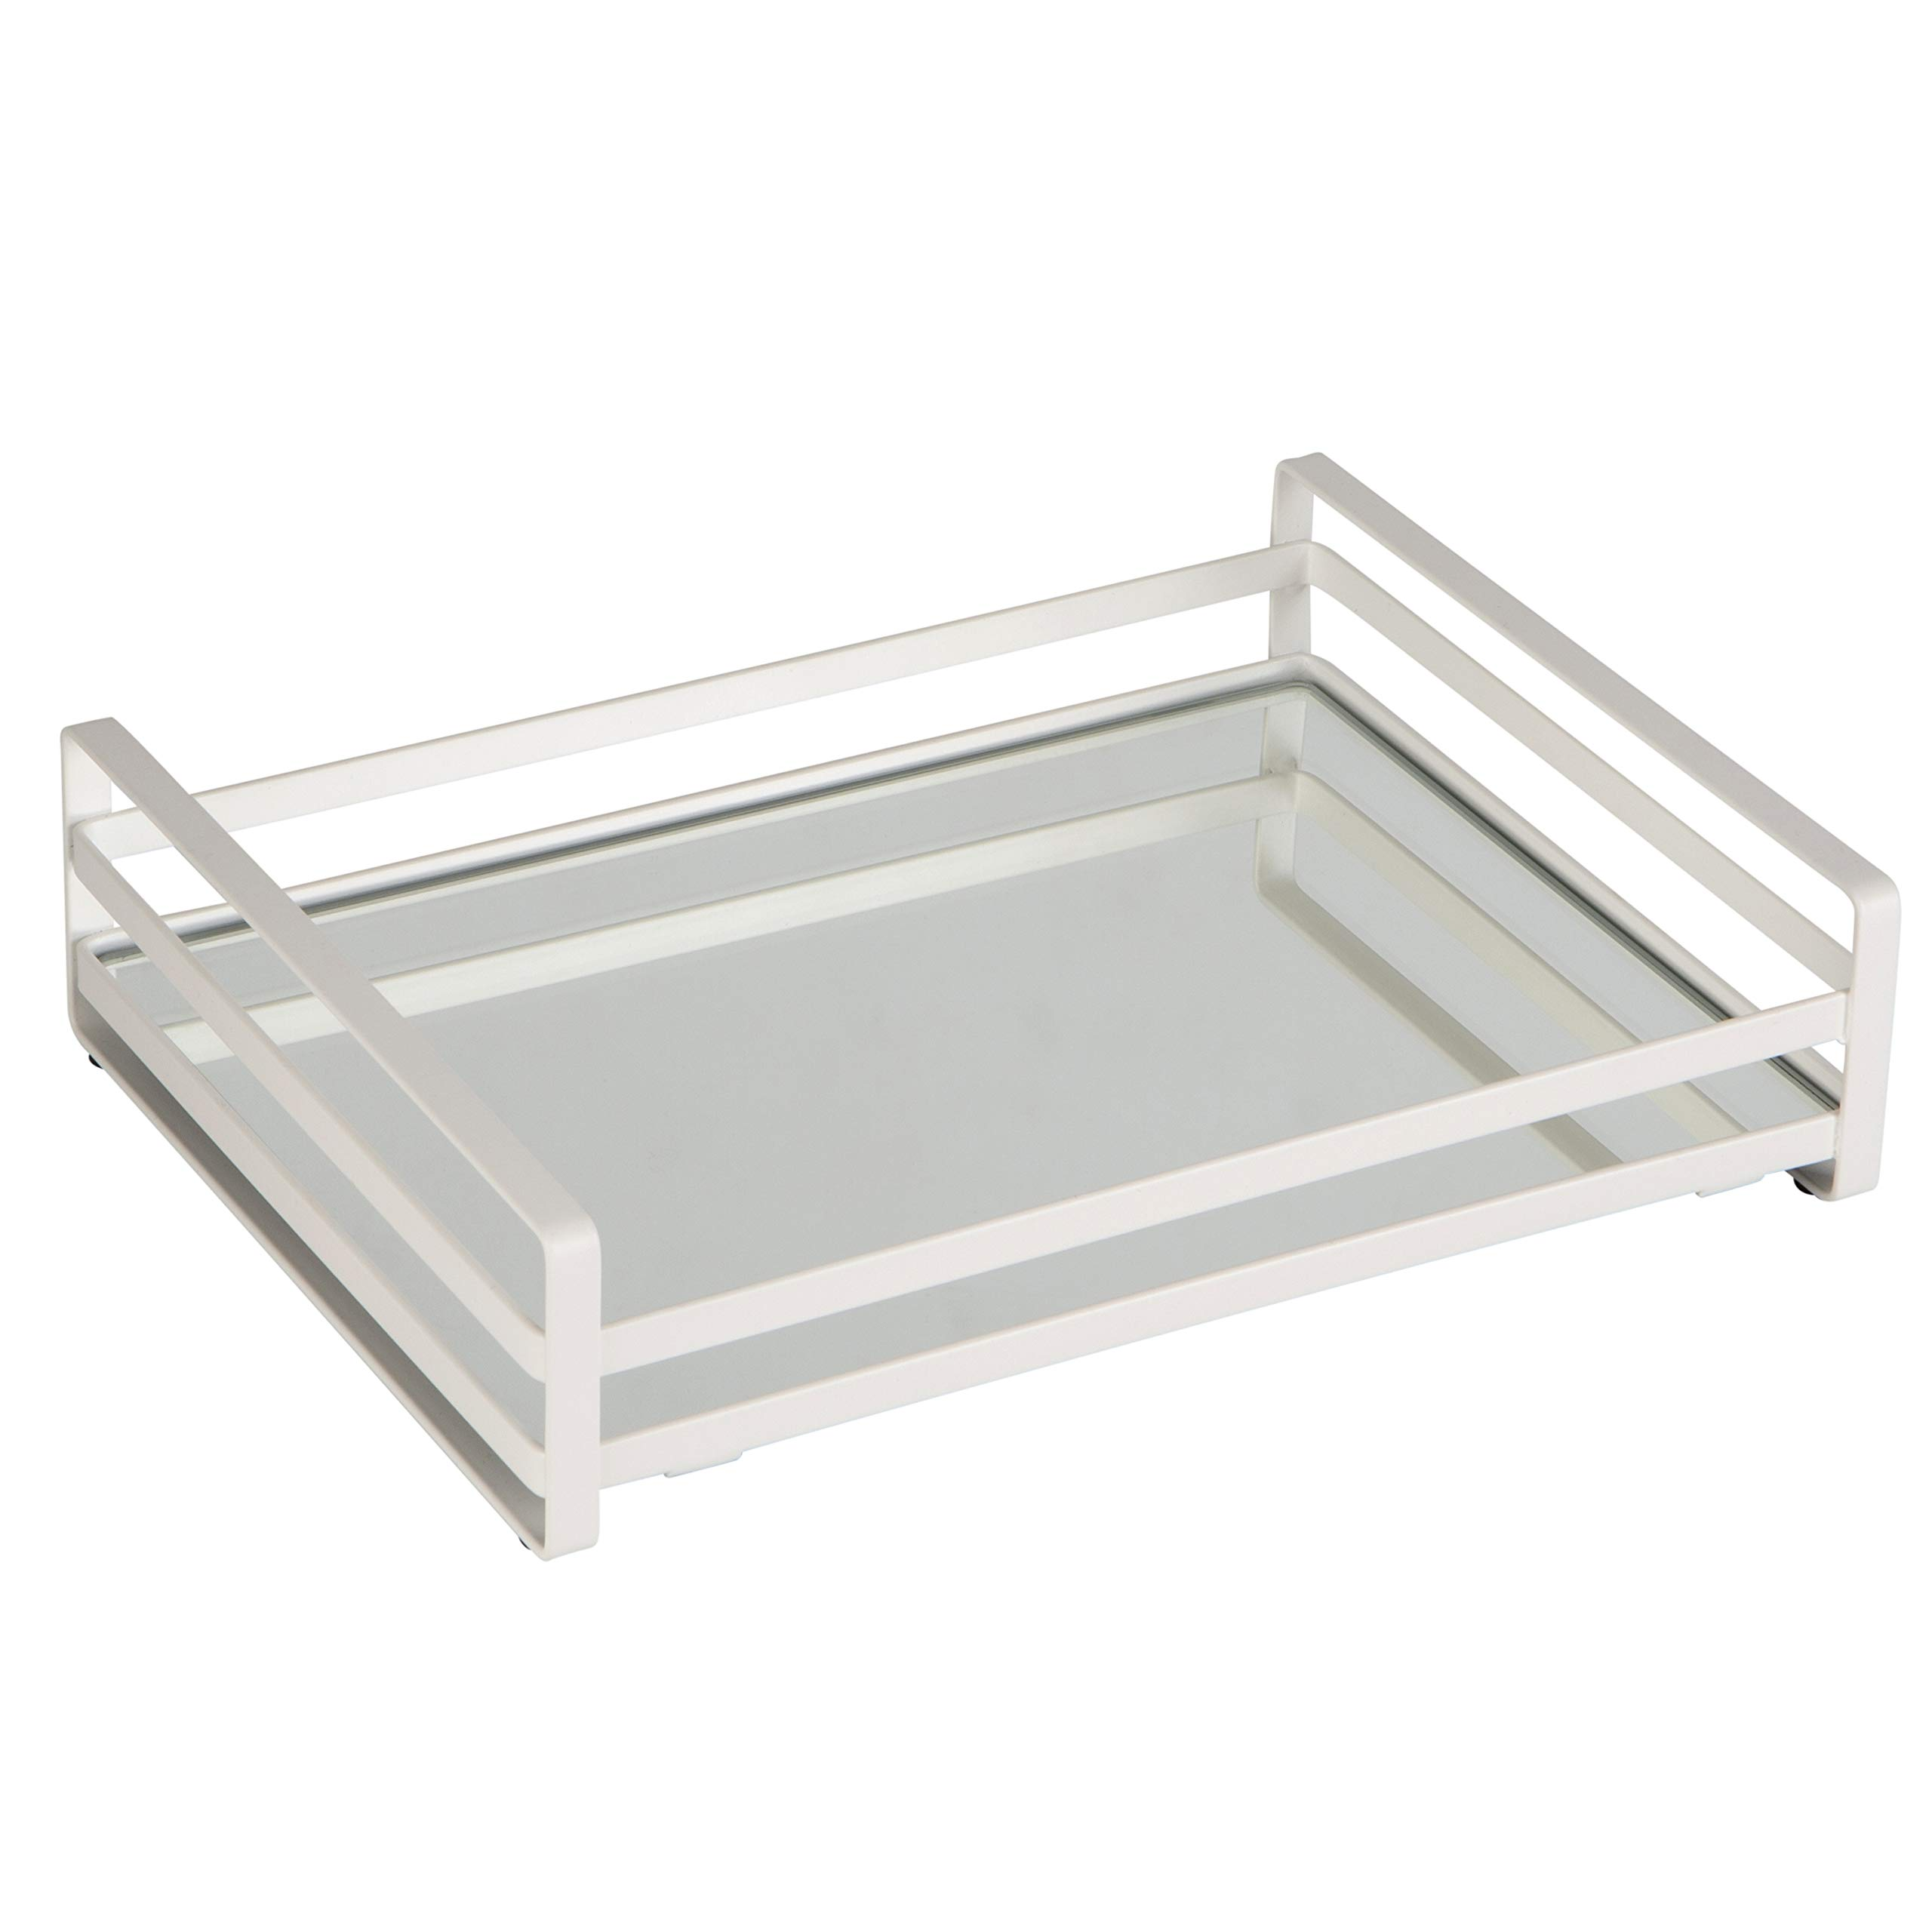 Home Details Flat Wired Rails Large Vanity Tray, Silver by Home Details